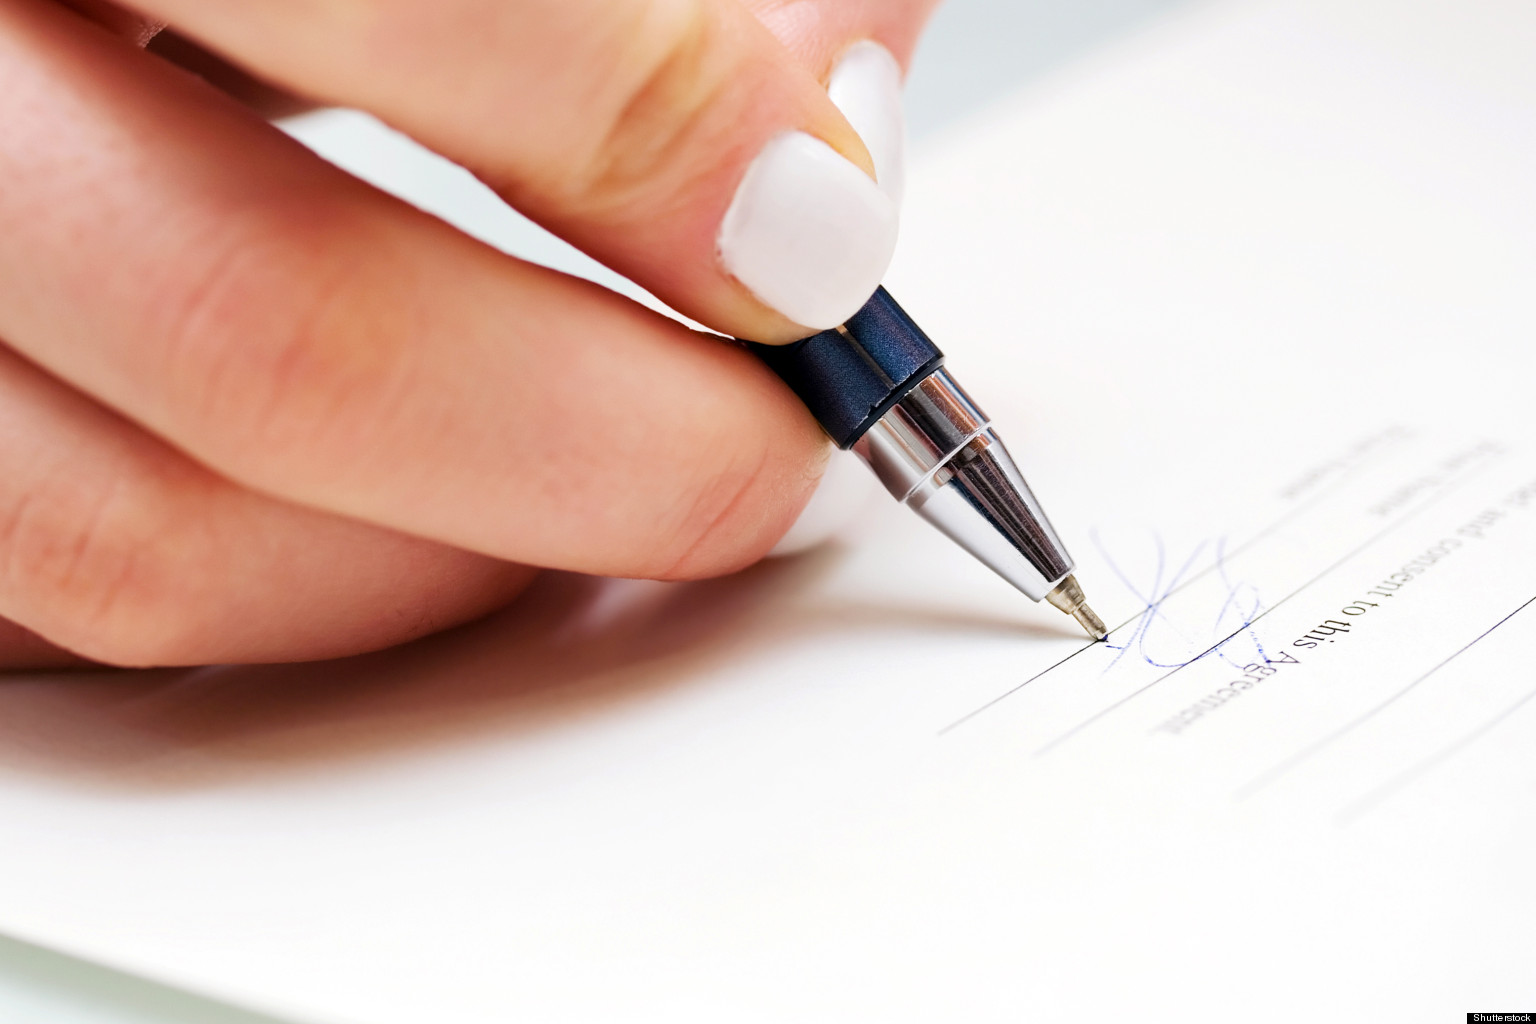 Woman writing signature on document